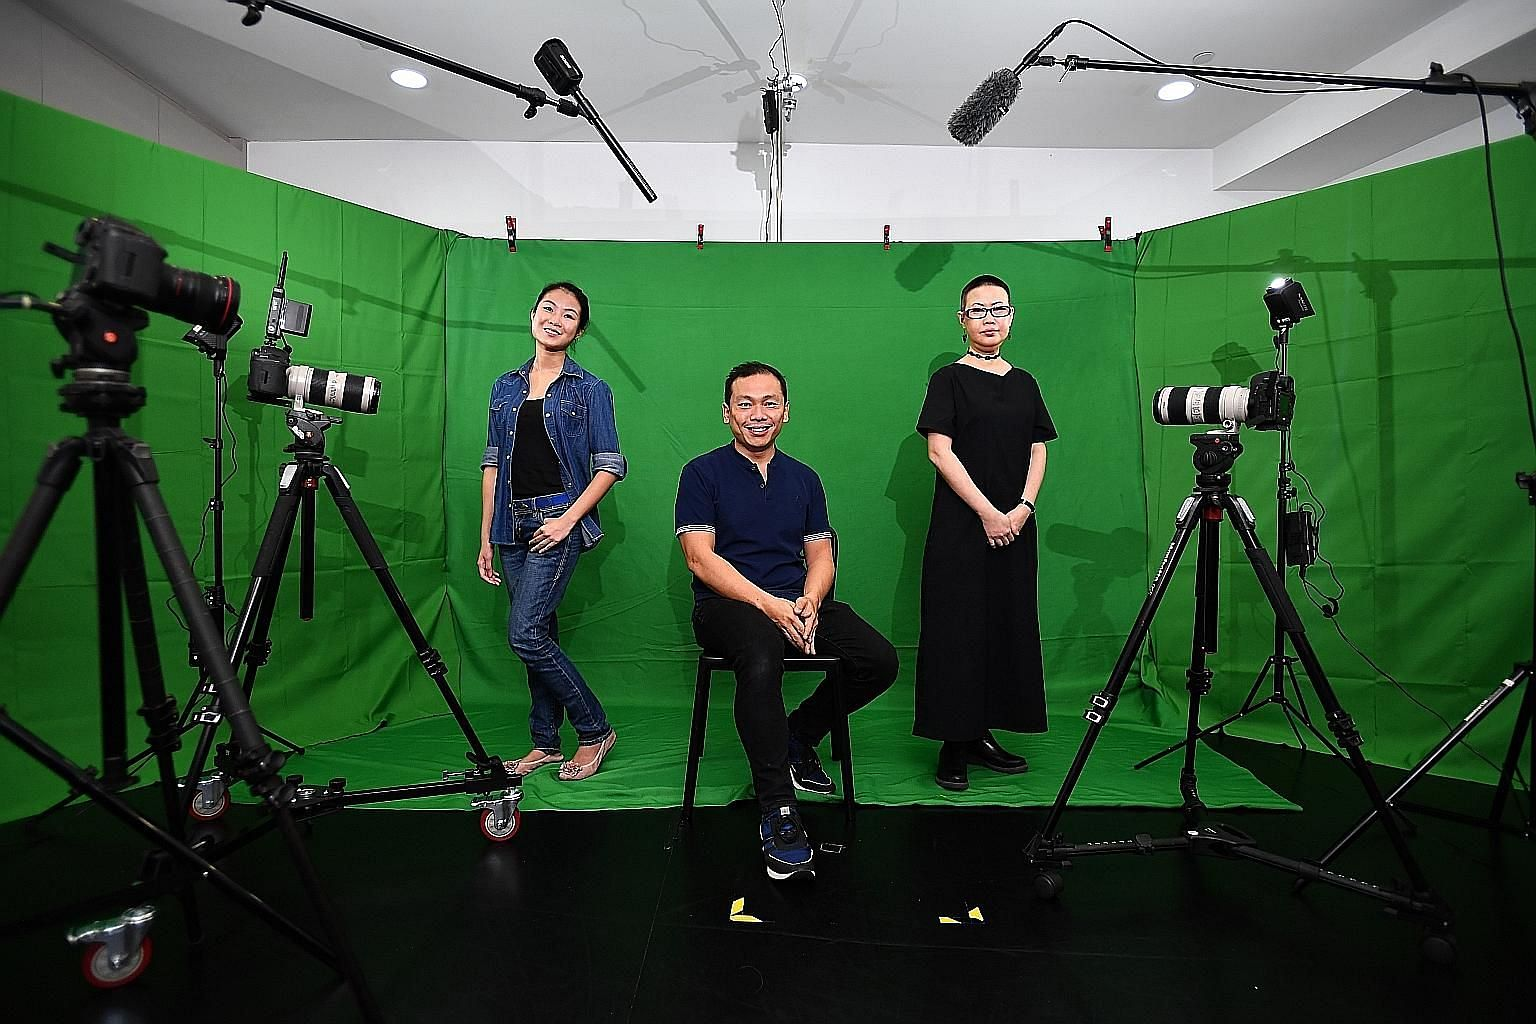 (From left) Arts practitioners Claire Teo, Peter Sau and Dawn-joy Leong at Very Special Arts Singapore. The three are panellists for the Arts & Disability Forum next month, where they will discuss inclusivity in the arts.